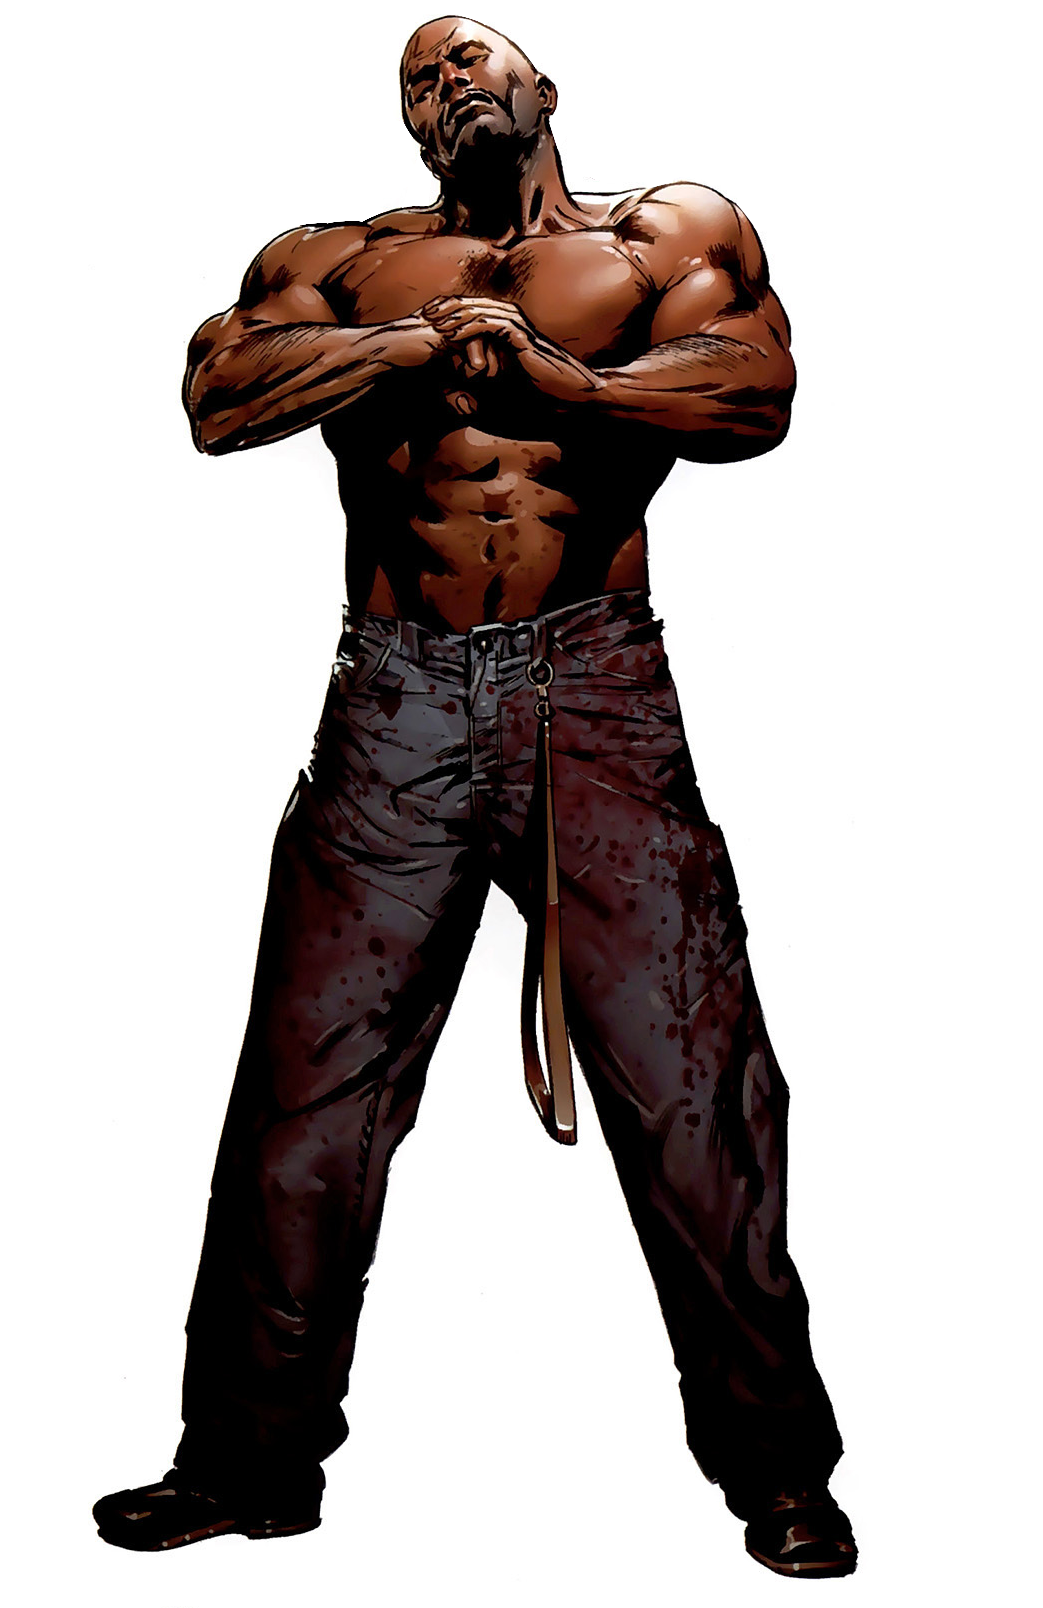 Luke cage png. Image new avengers vol